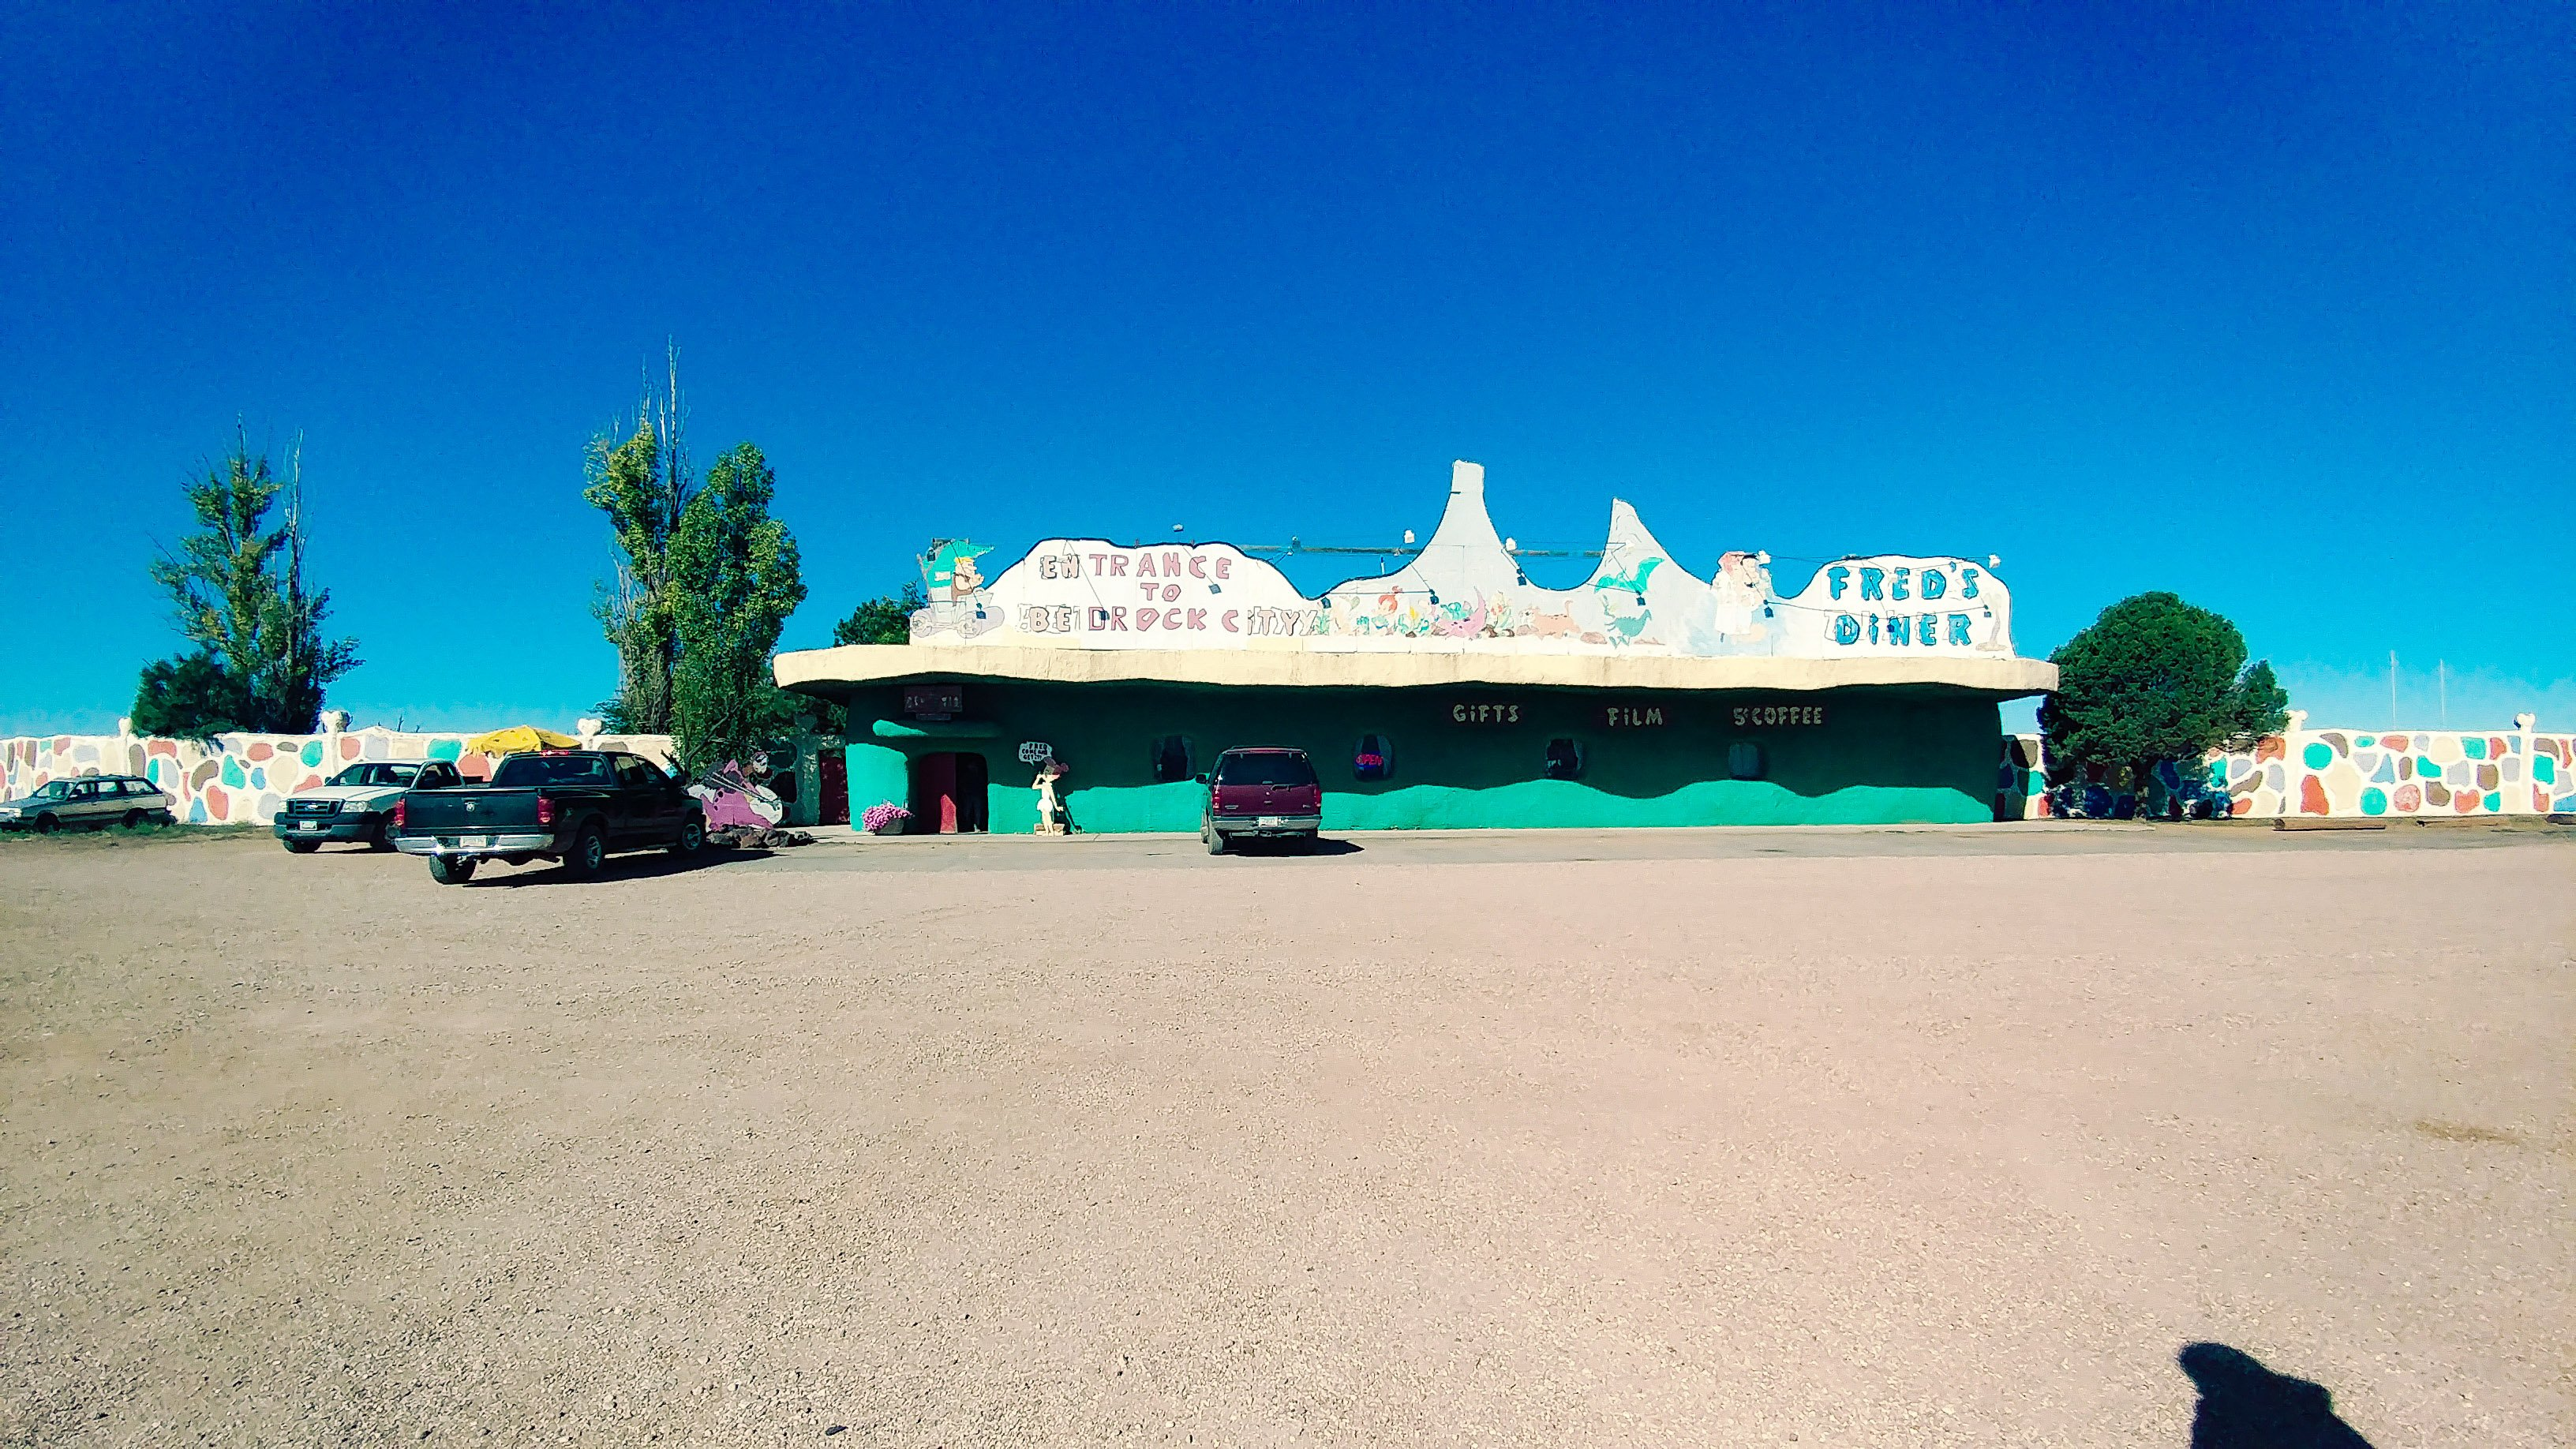 https://www.tripadvisor.com/Attraction_Review-g31407-d534990-Reviews-Flintstone_s_Bedrock_City-Williams_Arizona.html#photos;aggregationId=101&albumid=101&filter=7&ff=280548180